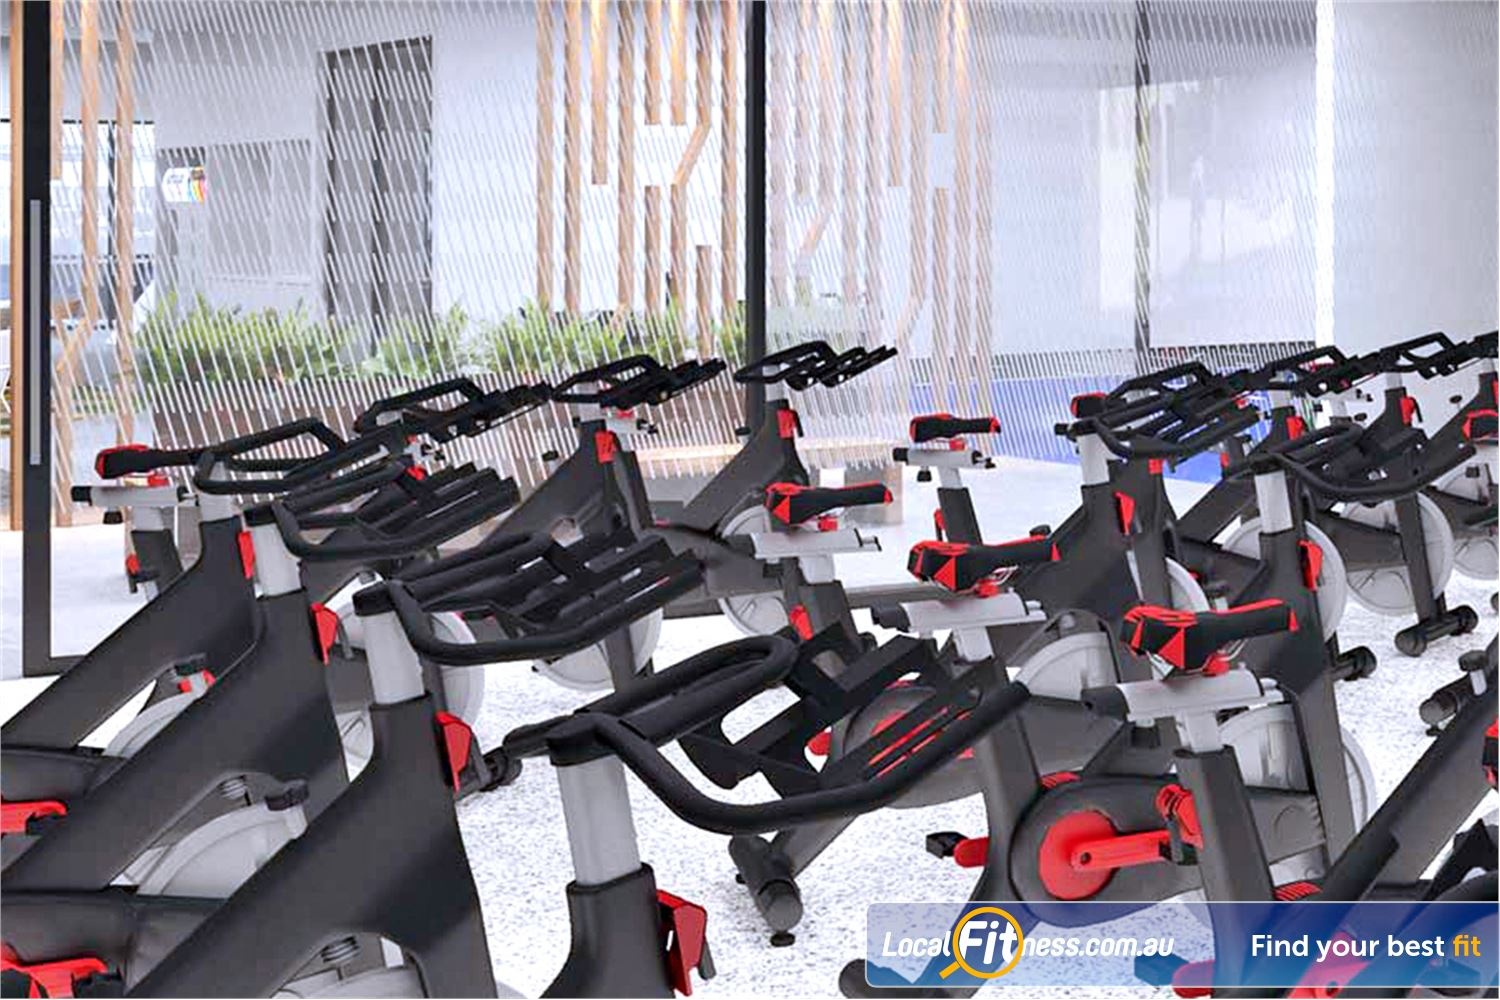 Goodlife Health Clubs Noarlunga Centre The state of the art Noarlunga spin cycle studio.